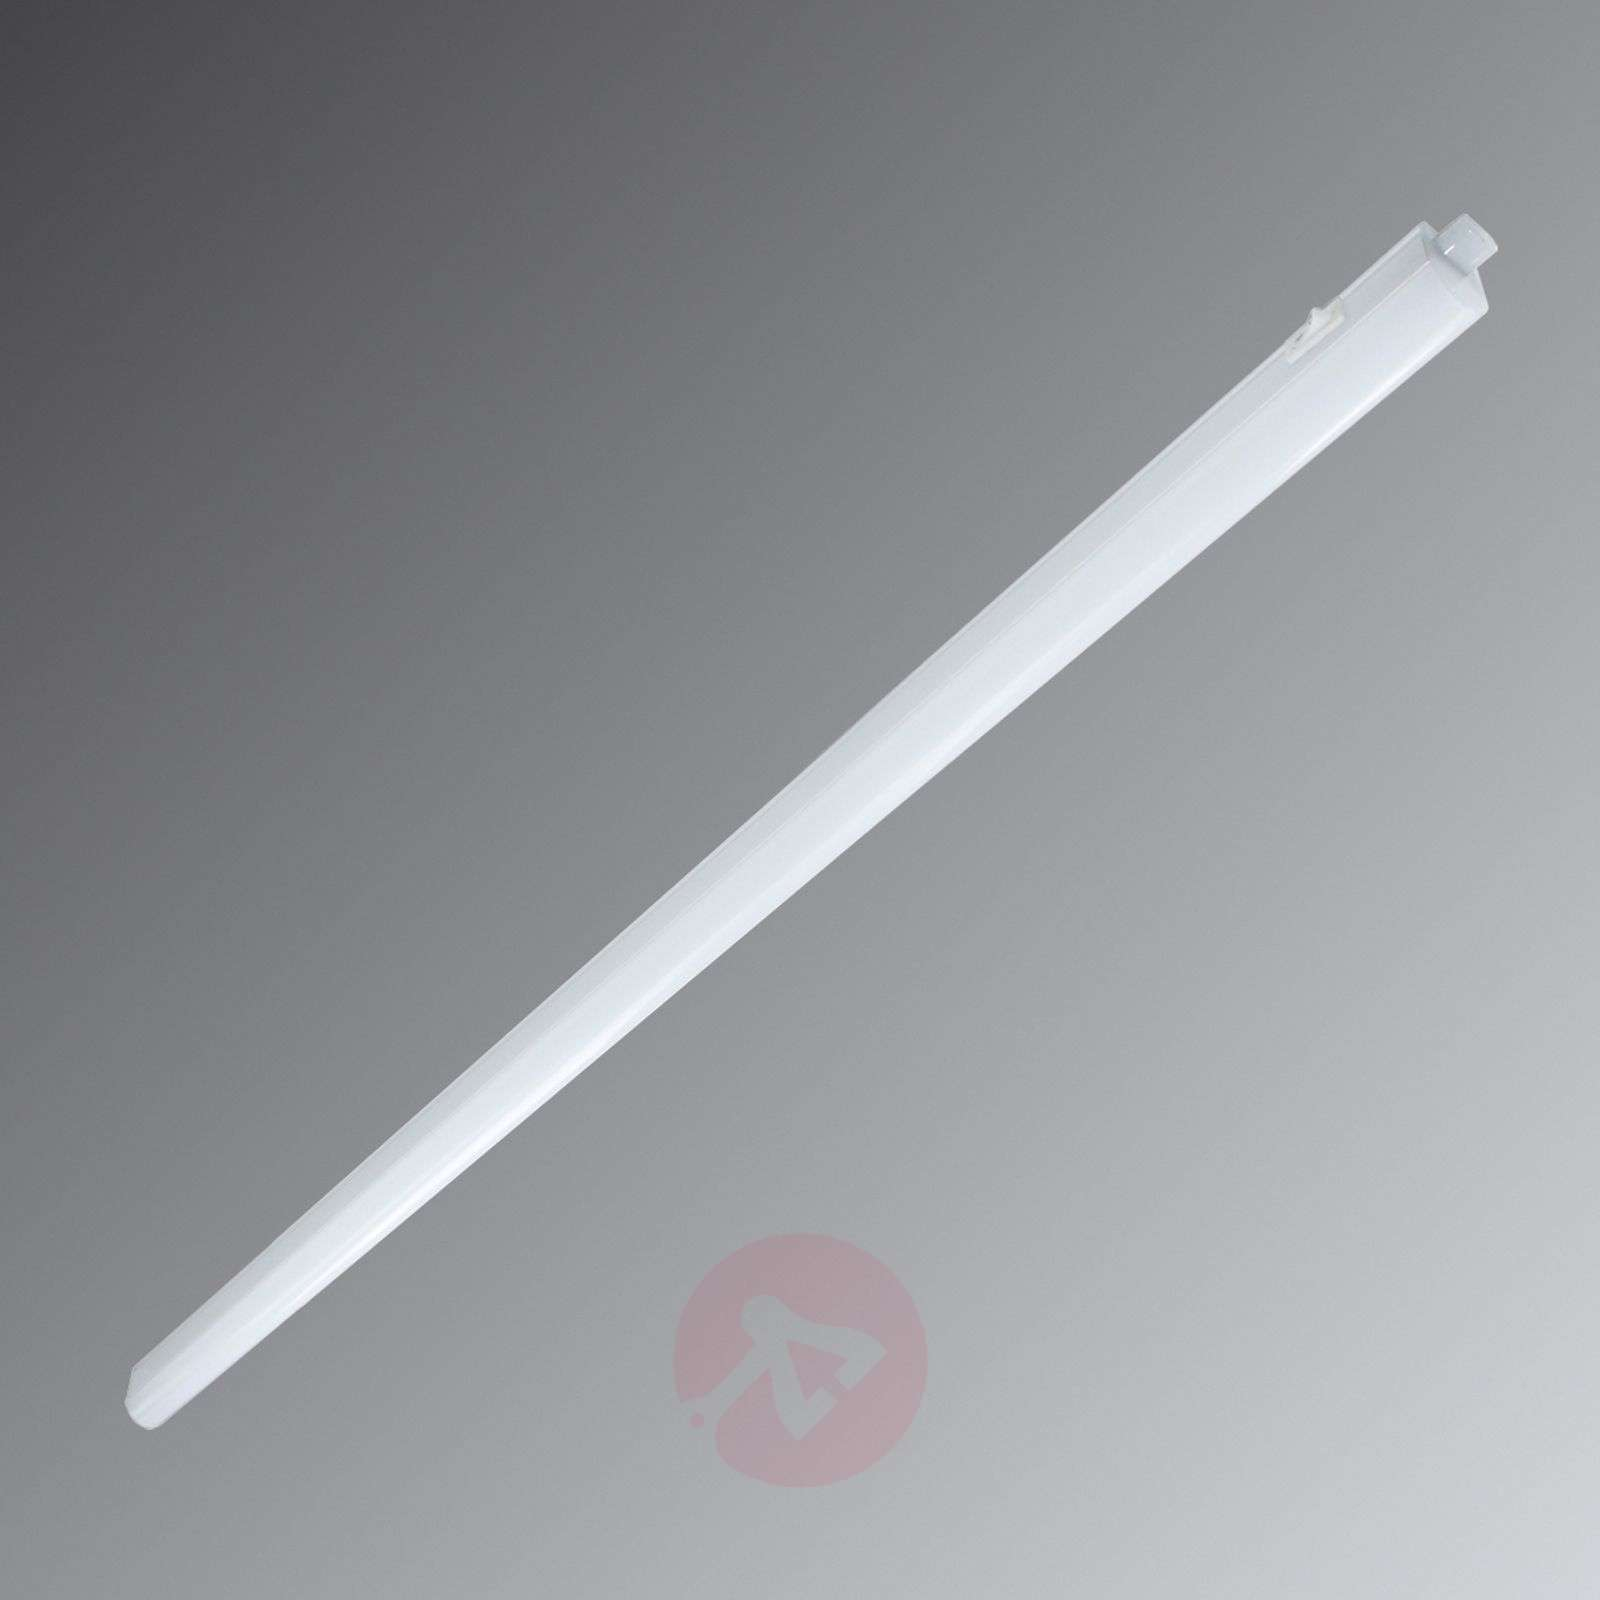 Extensible LED under-cabinet light Eckenheim-6022359-07